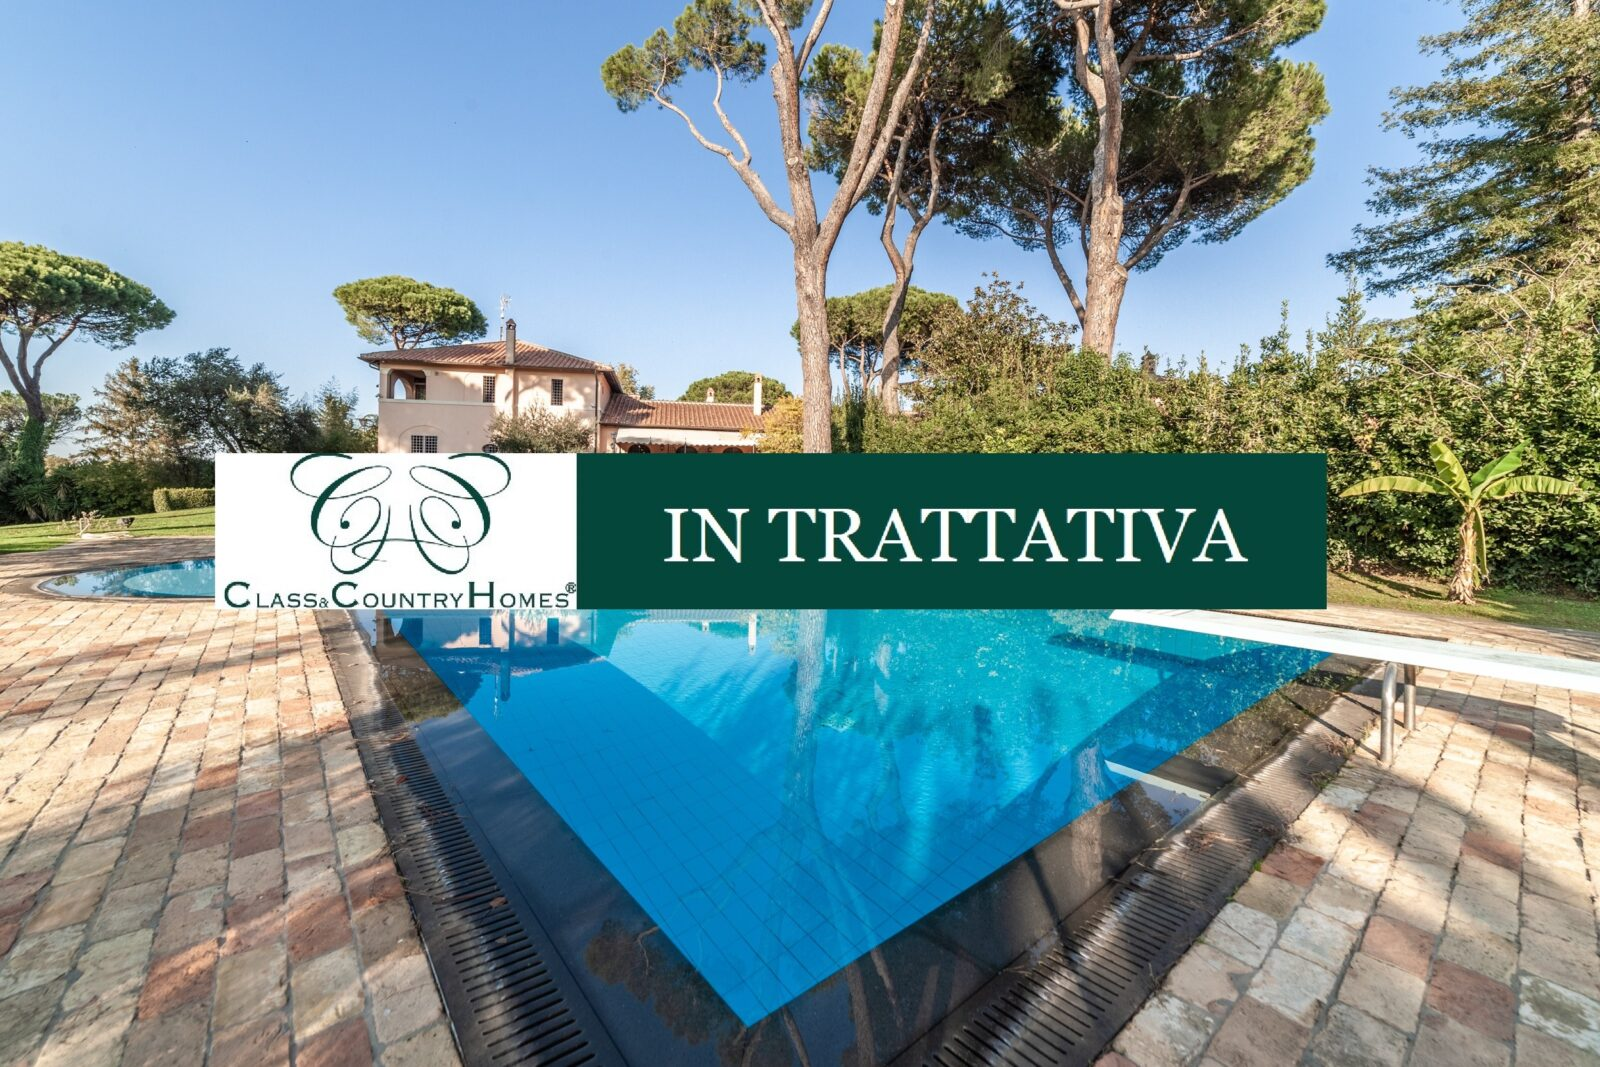 Italian Luxury Villas for Sale: Magnificent Residence in Rome